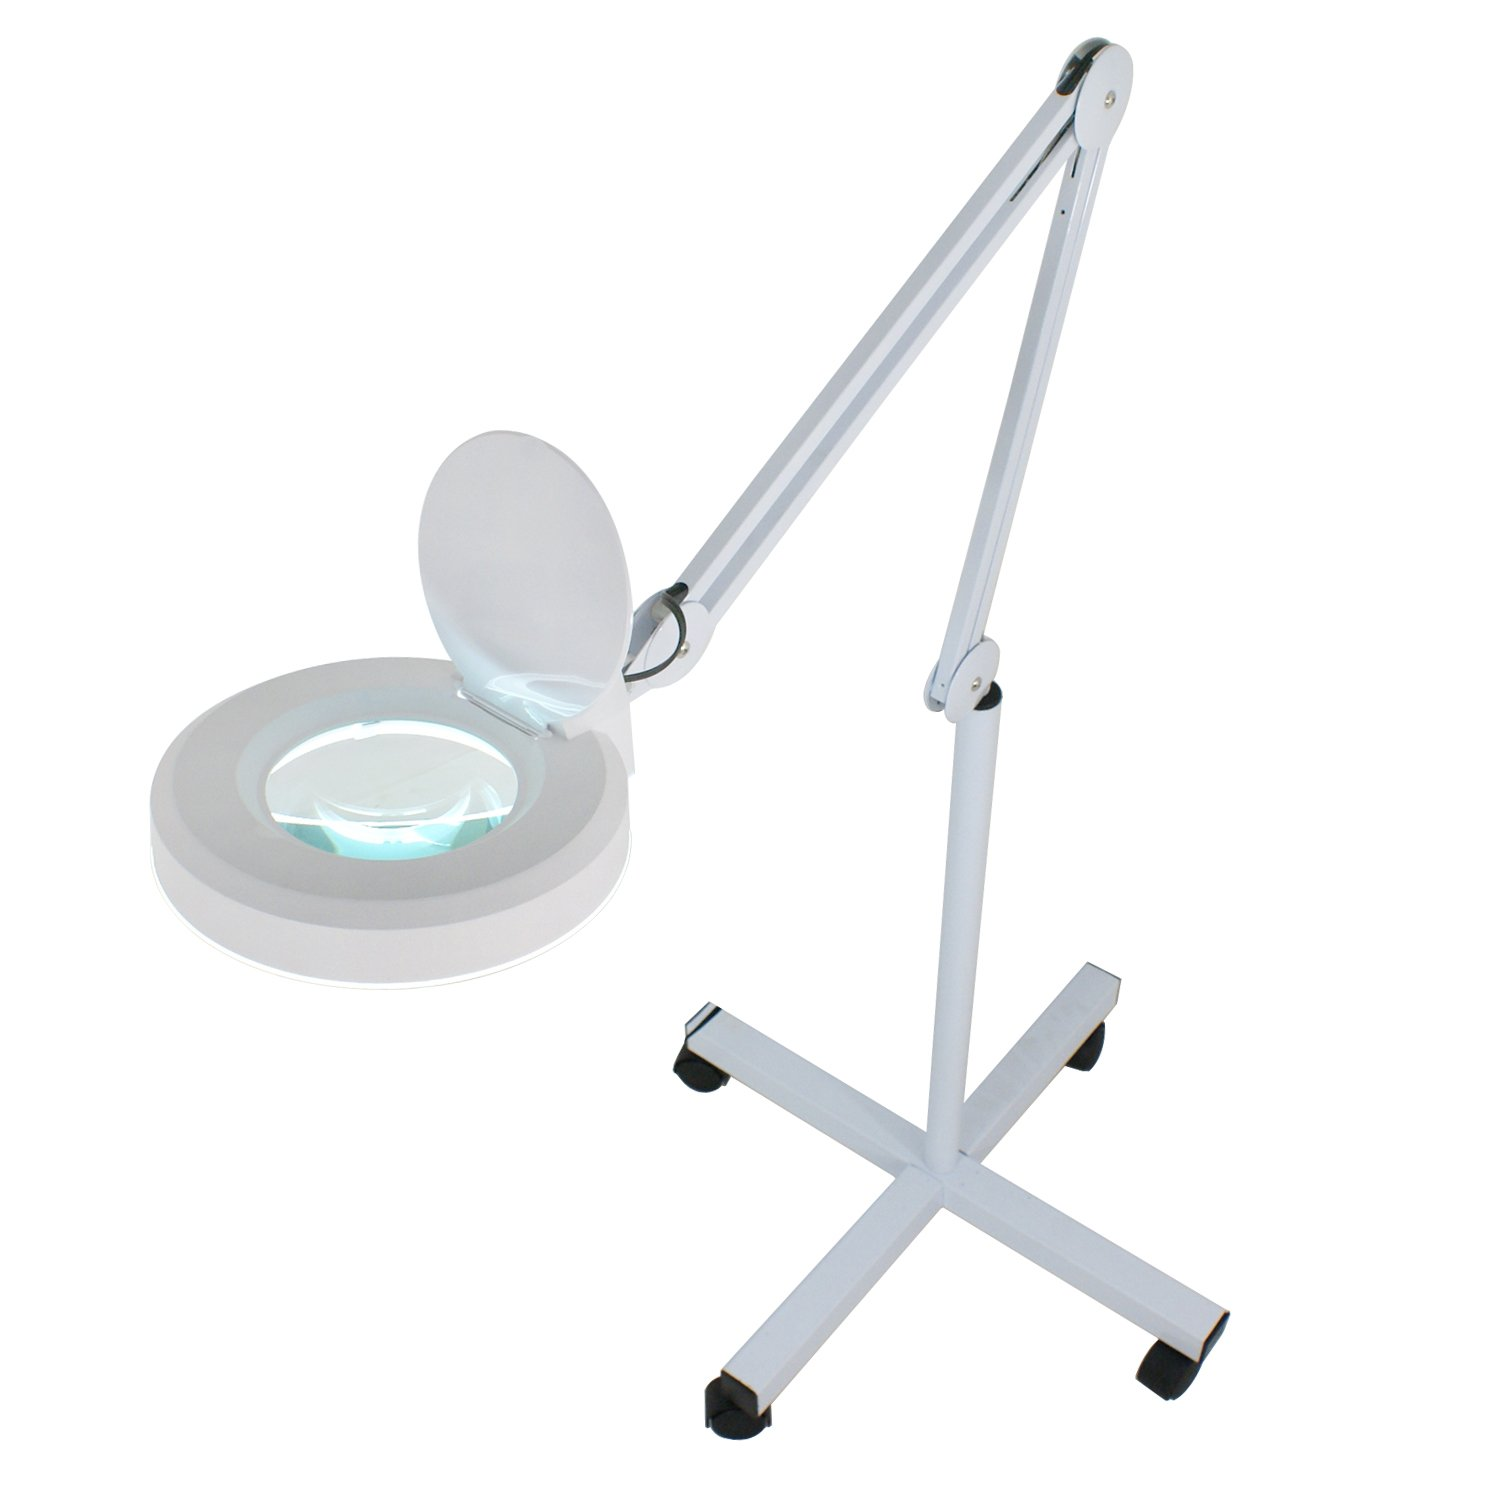 Super Deal Magnifier Lamp 5X Floor Magnifying Lamp - Adjustable Swivel Arm - Daylight Bright - Adjustable Mag Light - Rolling Stand by SUPER DEAL